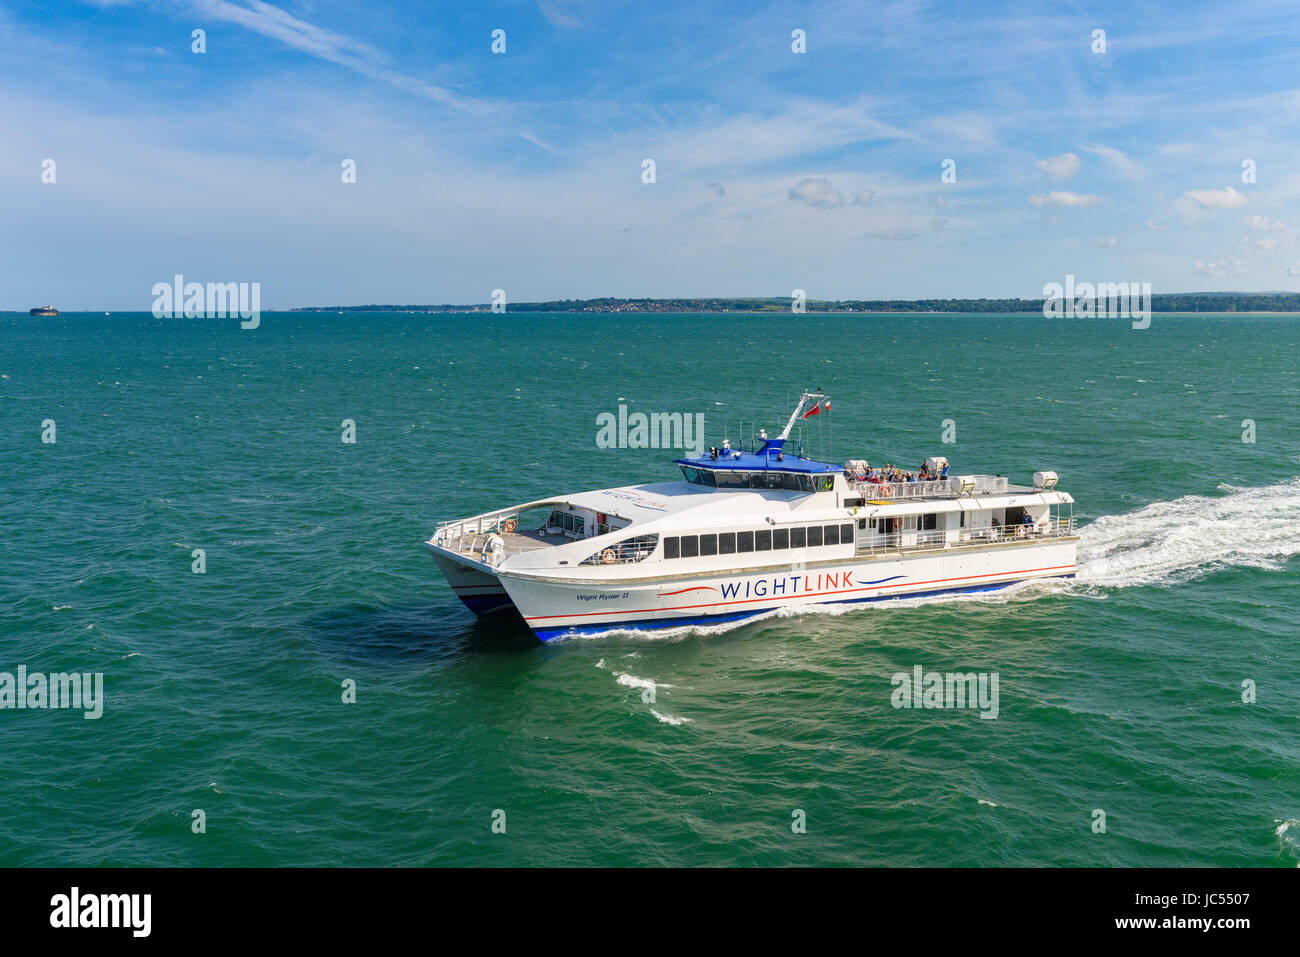 Portsmouth Isle of Wight Foot passenger catamaran ferry, UK - Stock Image